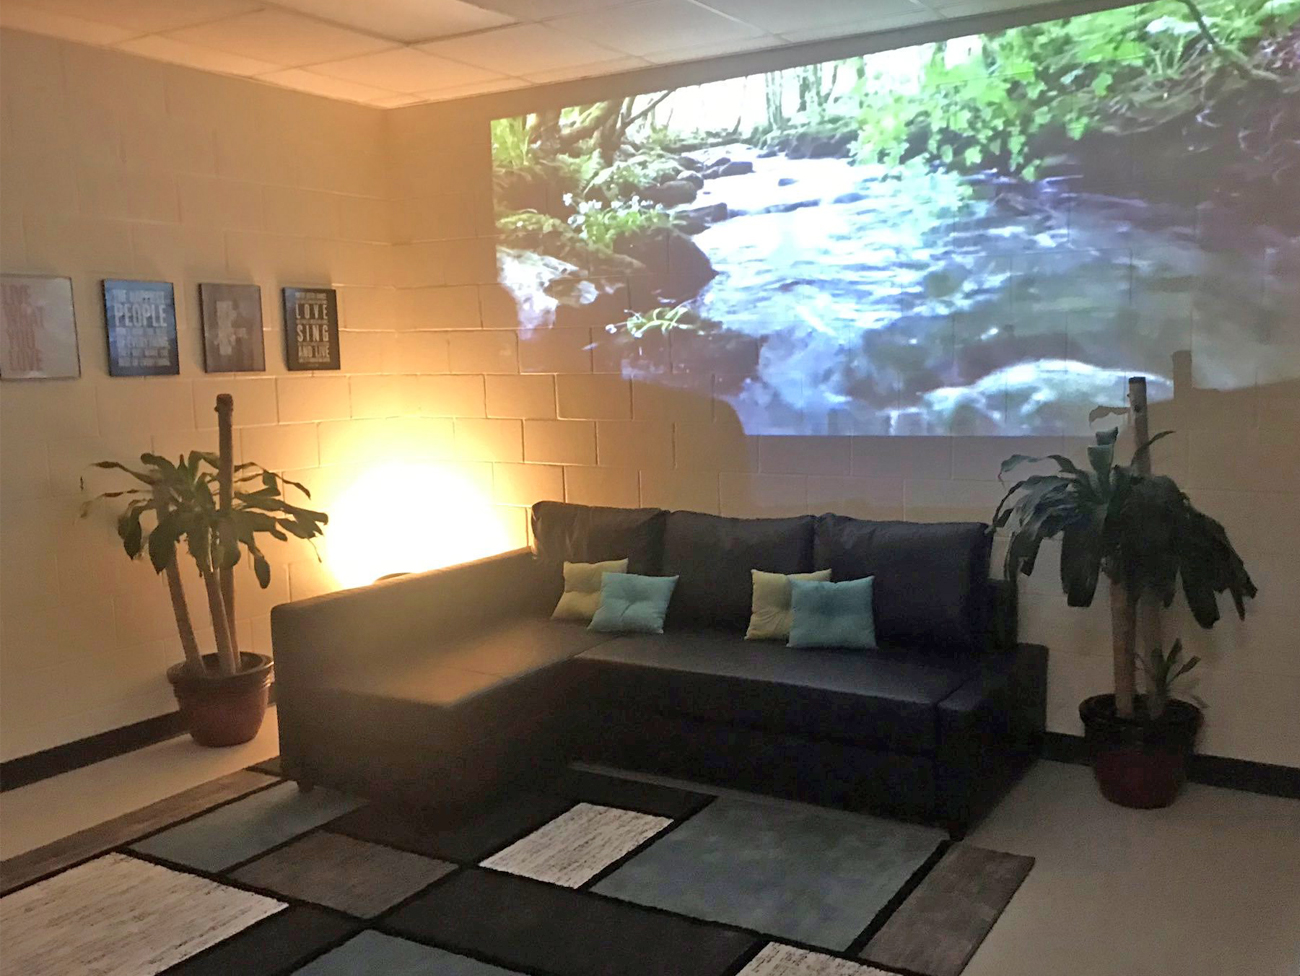 The McNair Mindfulness Mansion includes a sofa, two relaxation chairs, a projector displaying an image of a stream on the wall,